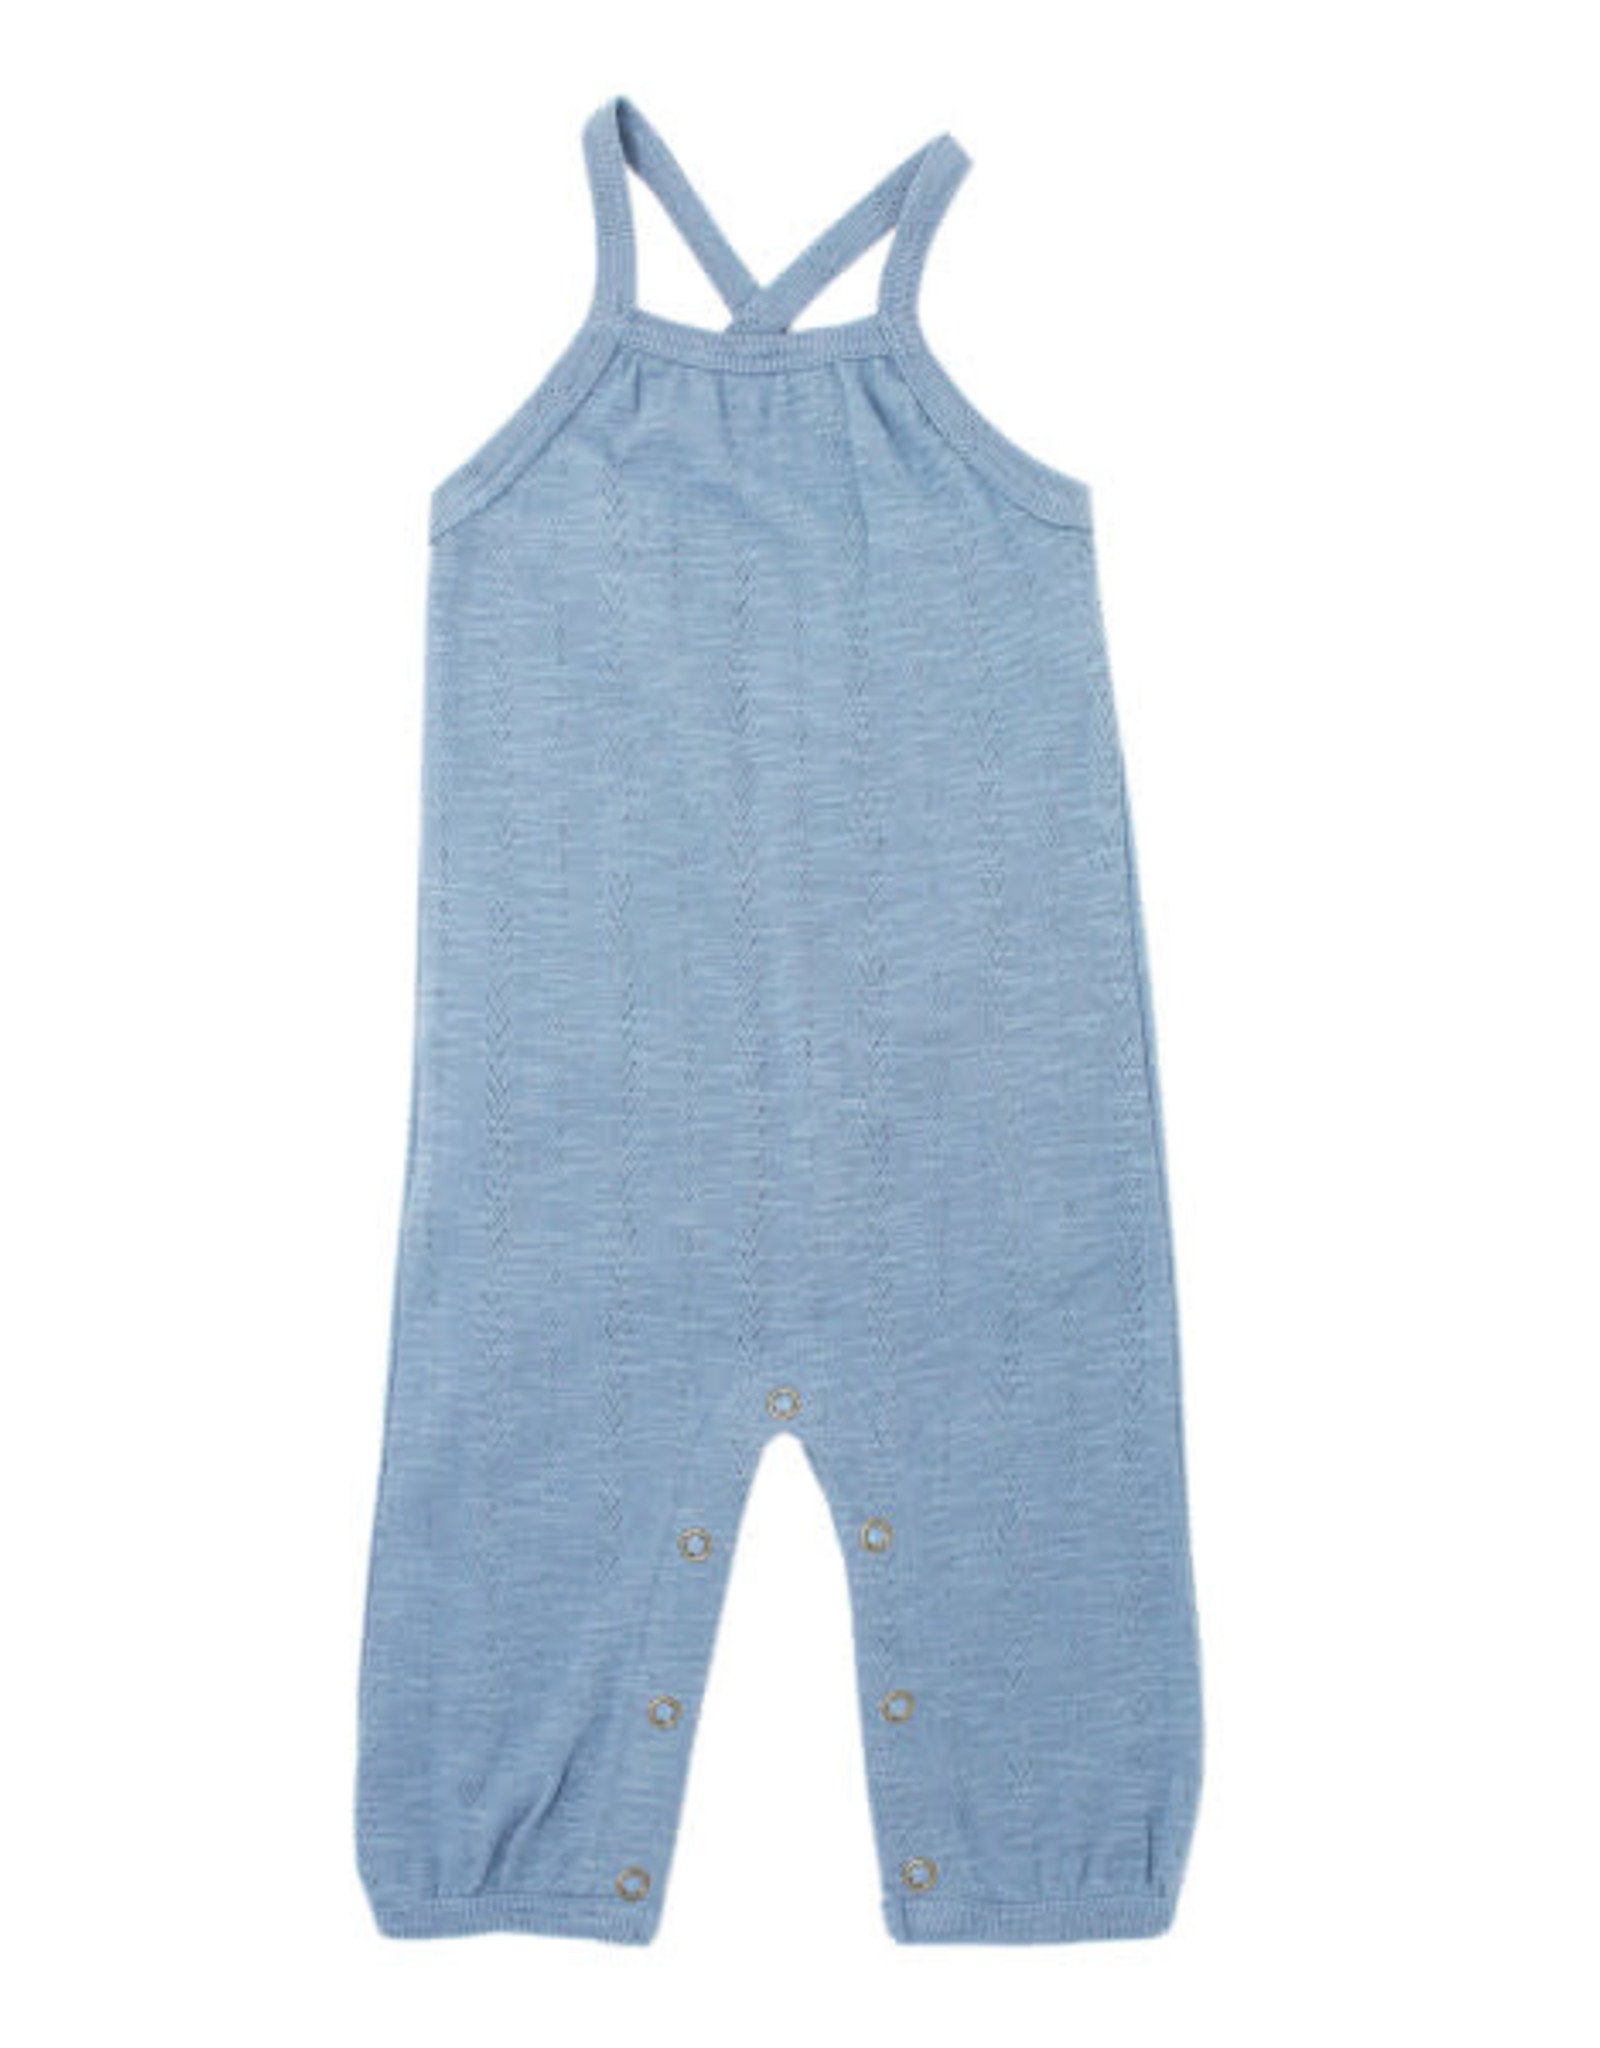 L'oved Baby Pointelle Romper Pool